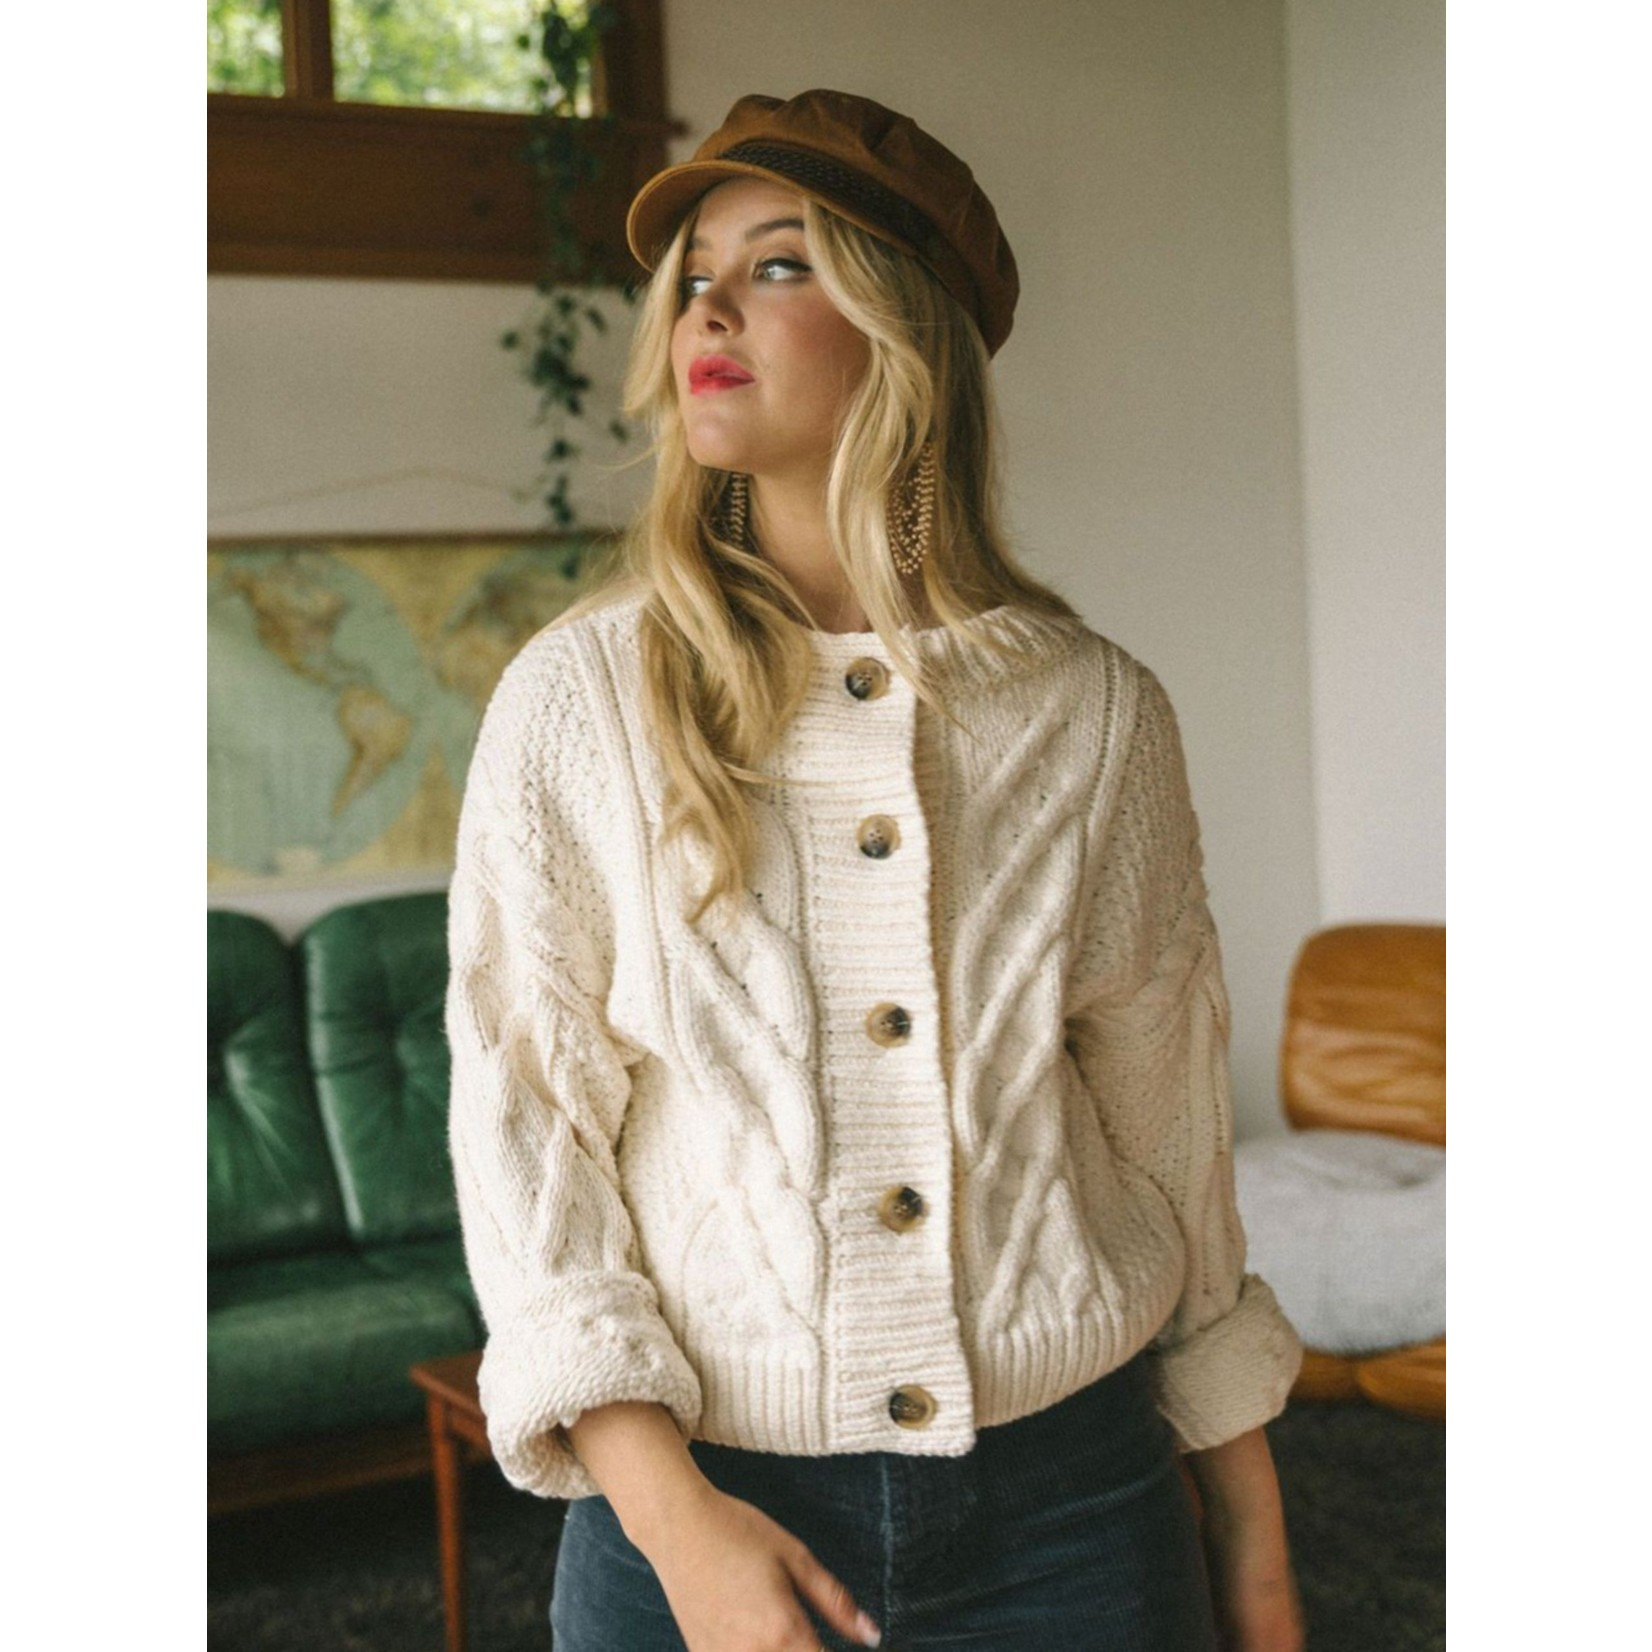 JACKSON ROWE SHELLY CABLE KNIT